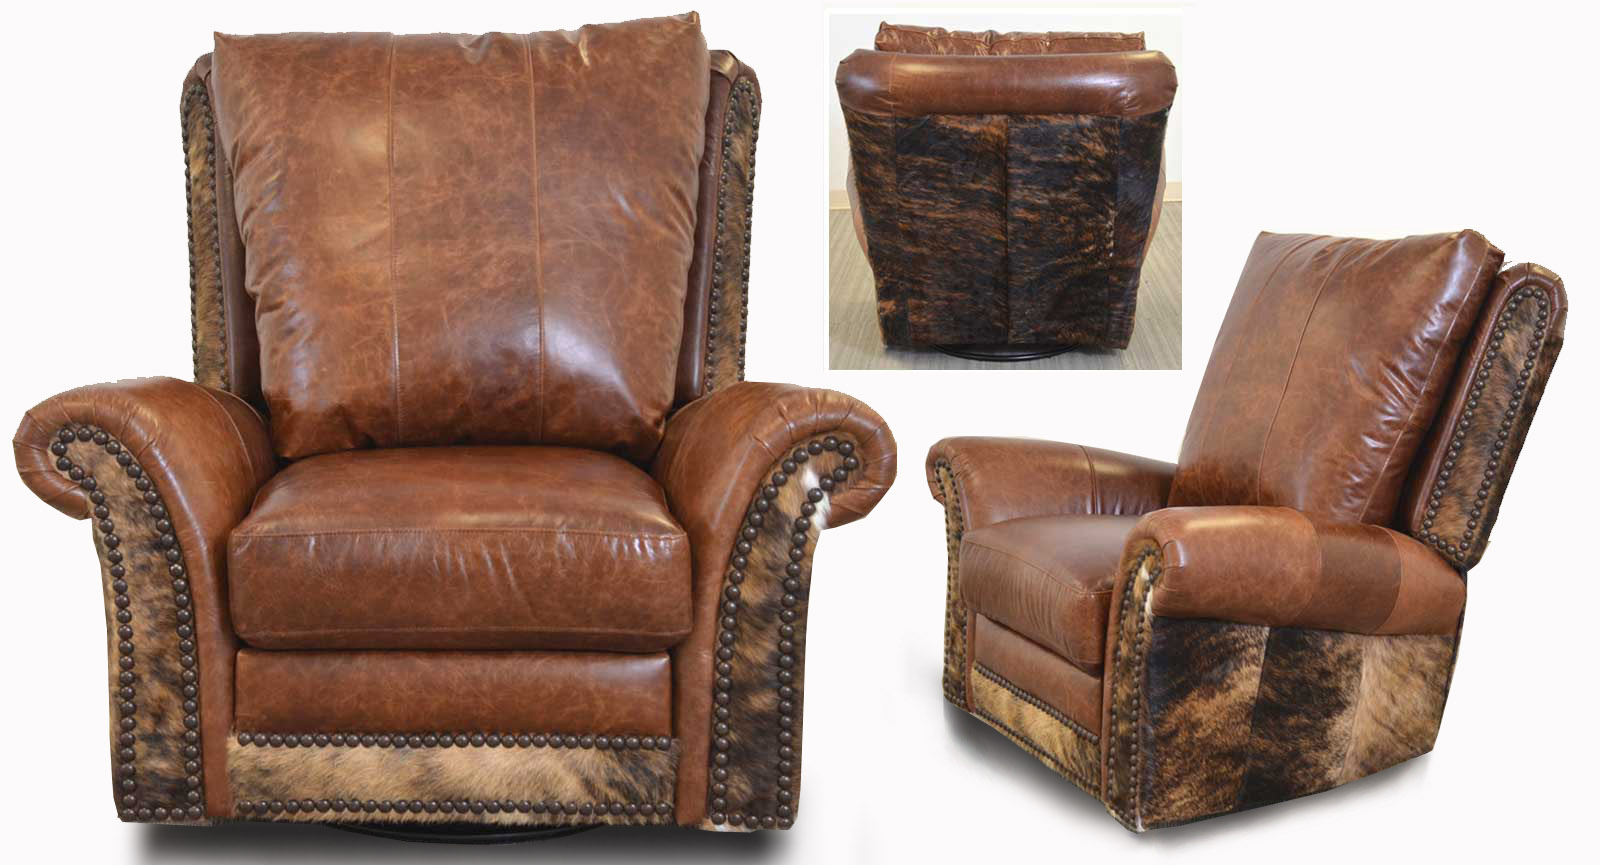 Swivel Glider Recliner Hair On Hide